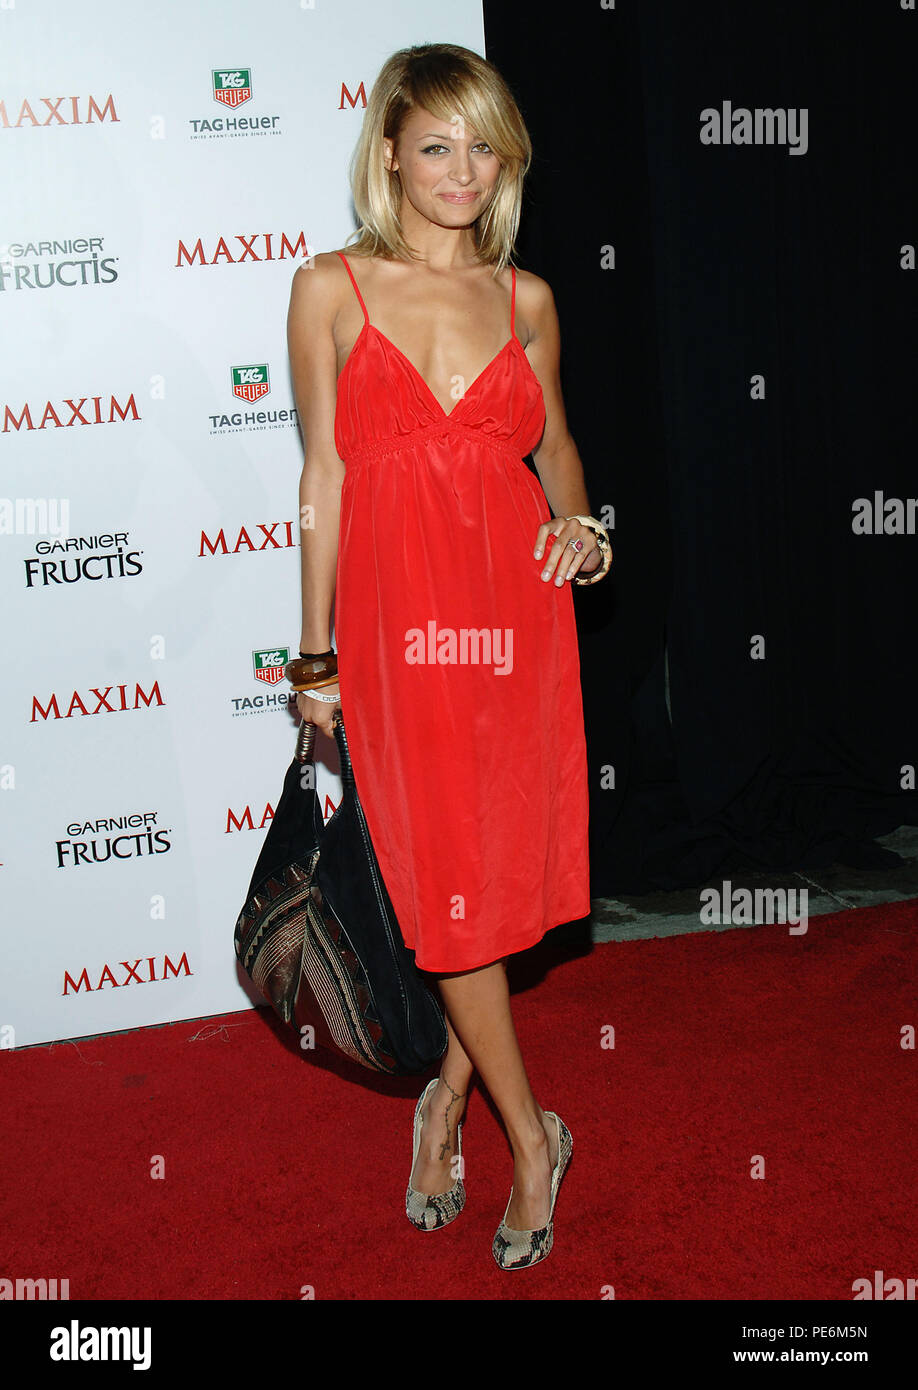 Nicole Richie arriving at the Maxim Magazine 100 List of the hottest women party in Los Angeles. May 12, 2005.  06_RichieNicole021 Red Carpet Event, Vertical, USA, Film Industry, Celebrities,  Photography, Bestof, Arts Culture and Entertainment, Topix Celebrities fashion /  Vertical, Best of, Event in Hollywood Life - California,  Red Carpet and backstage, USA, Film Industry, Celebrities,  movie celebrities, TV celebrities, Music celebrities, Photography, Bestof, Arts Culture and Entertainment,  Topix, vertical, one person,, from the year , 2005, inquiry tsuni@Gamma-USA.com Fashion - Full Leng - Stock Image